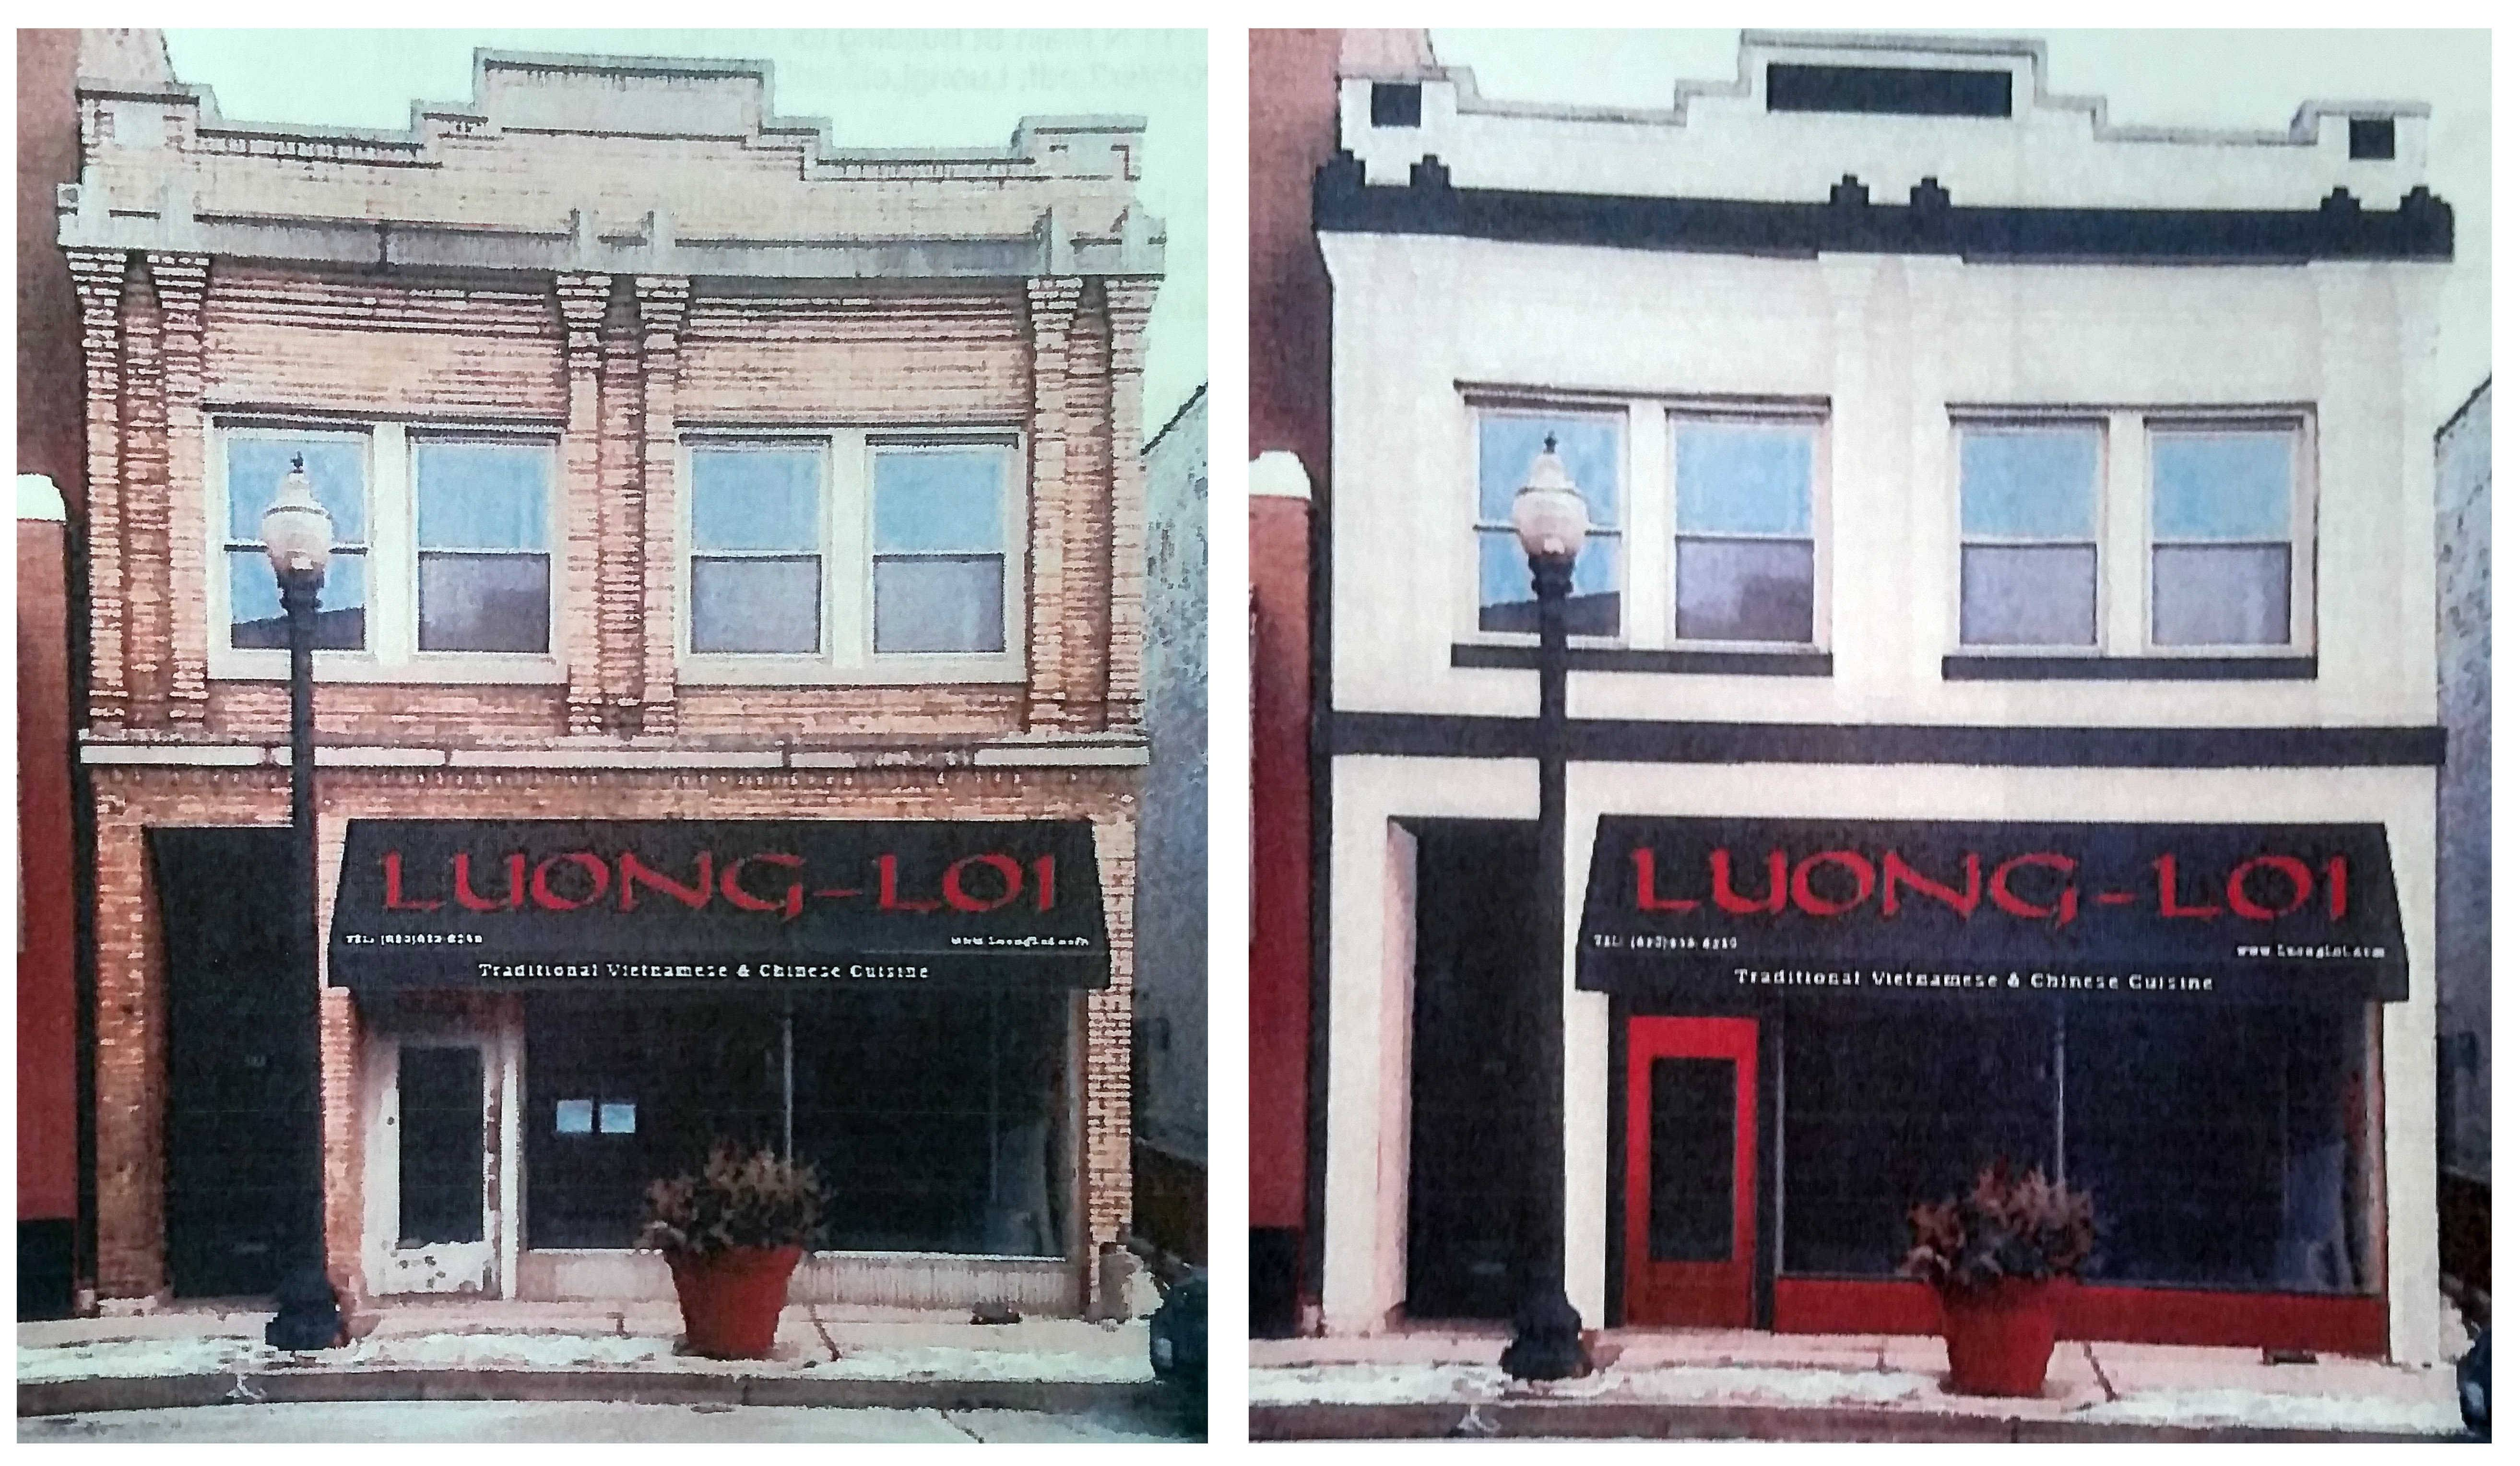 Wheaton council votes 5-2 to allow paint on old building facade